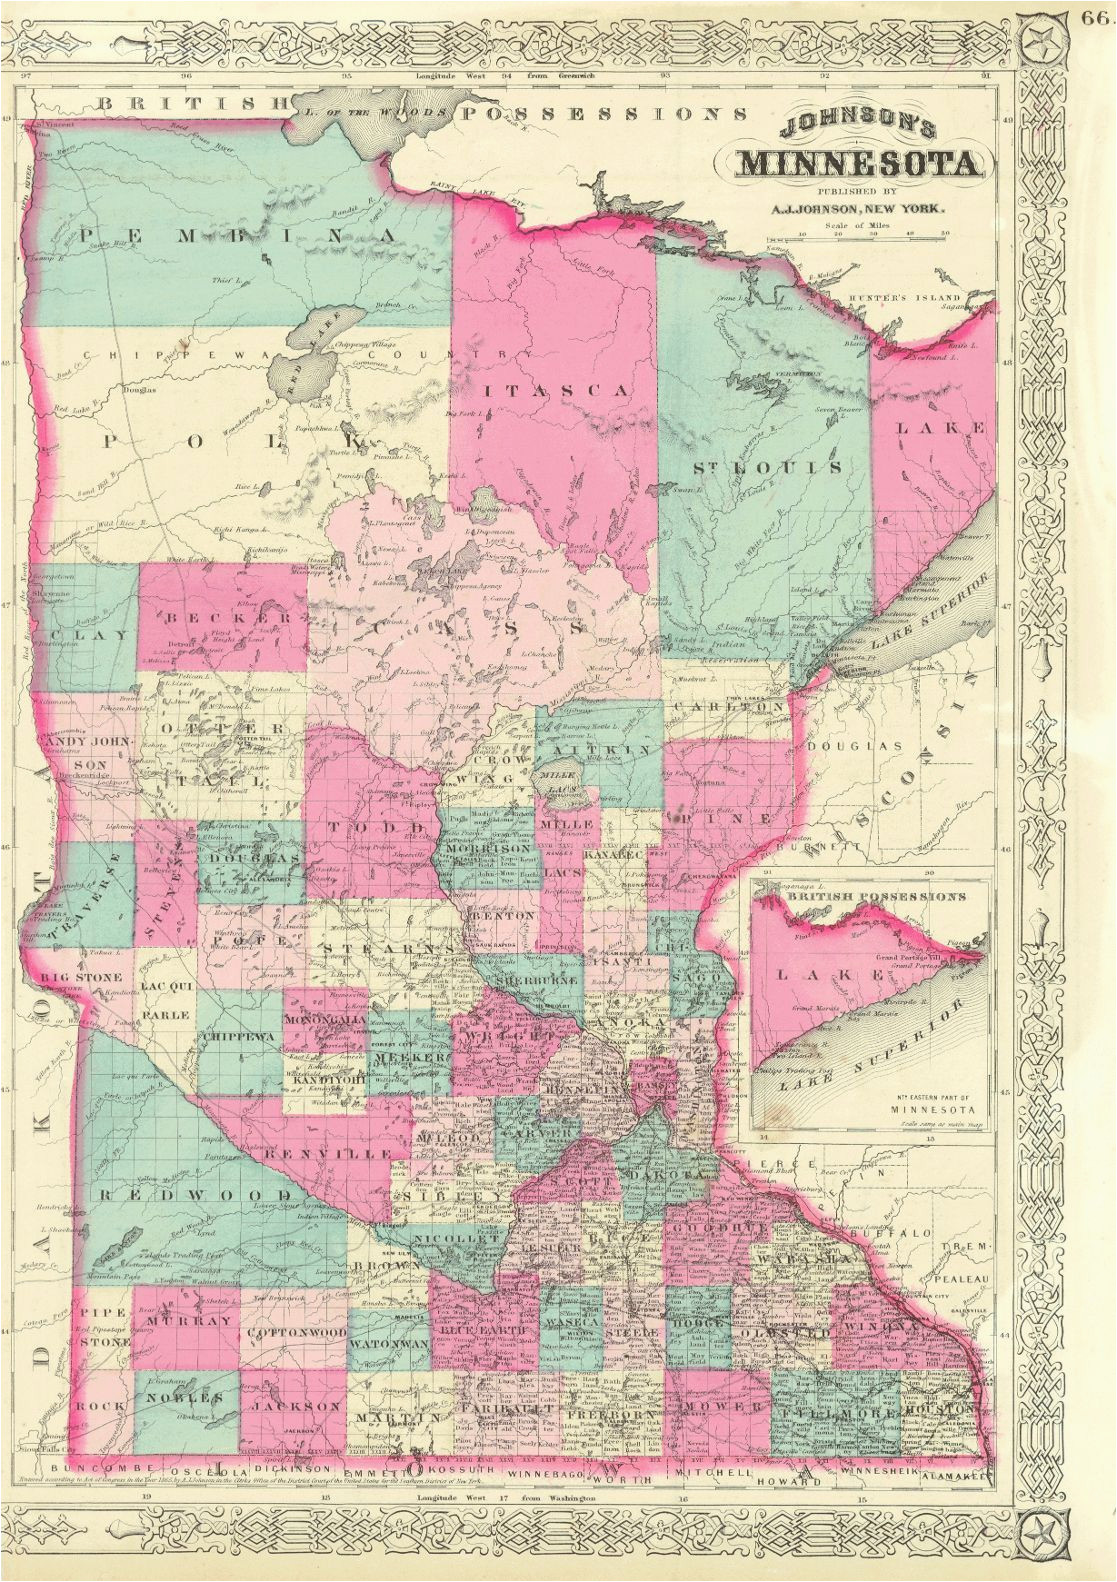 Detailed Map Of Minnesota 1852 Mitchell Minnesota Territory Map before north or south Dakota